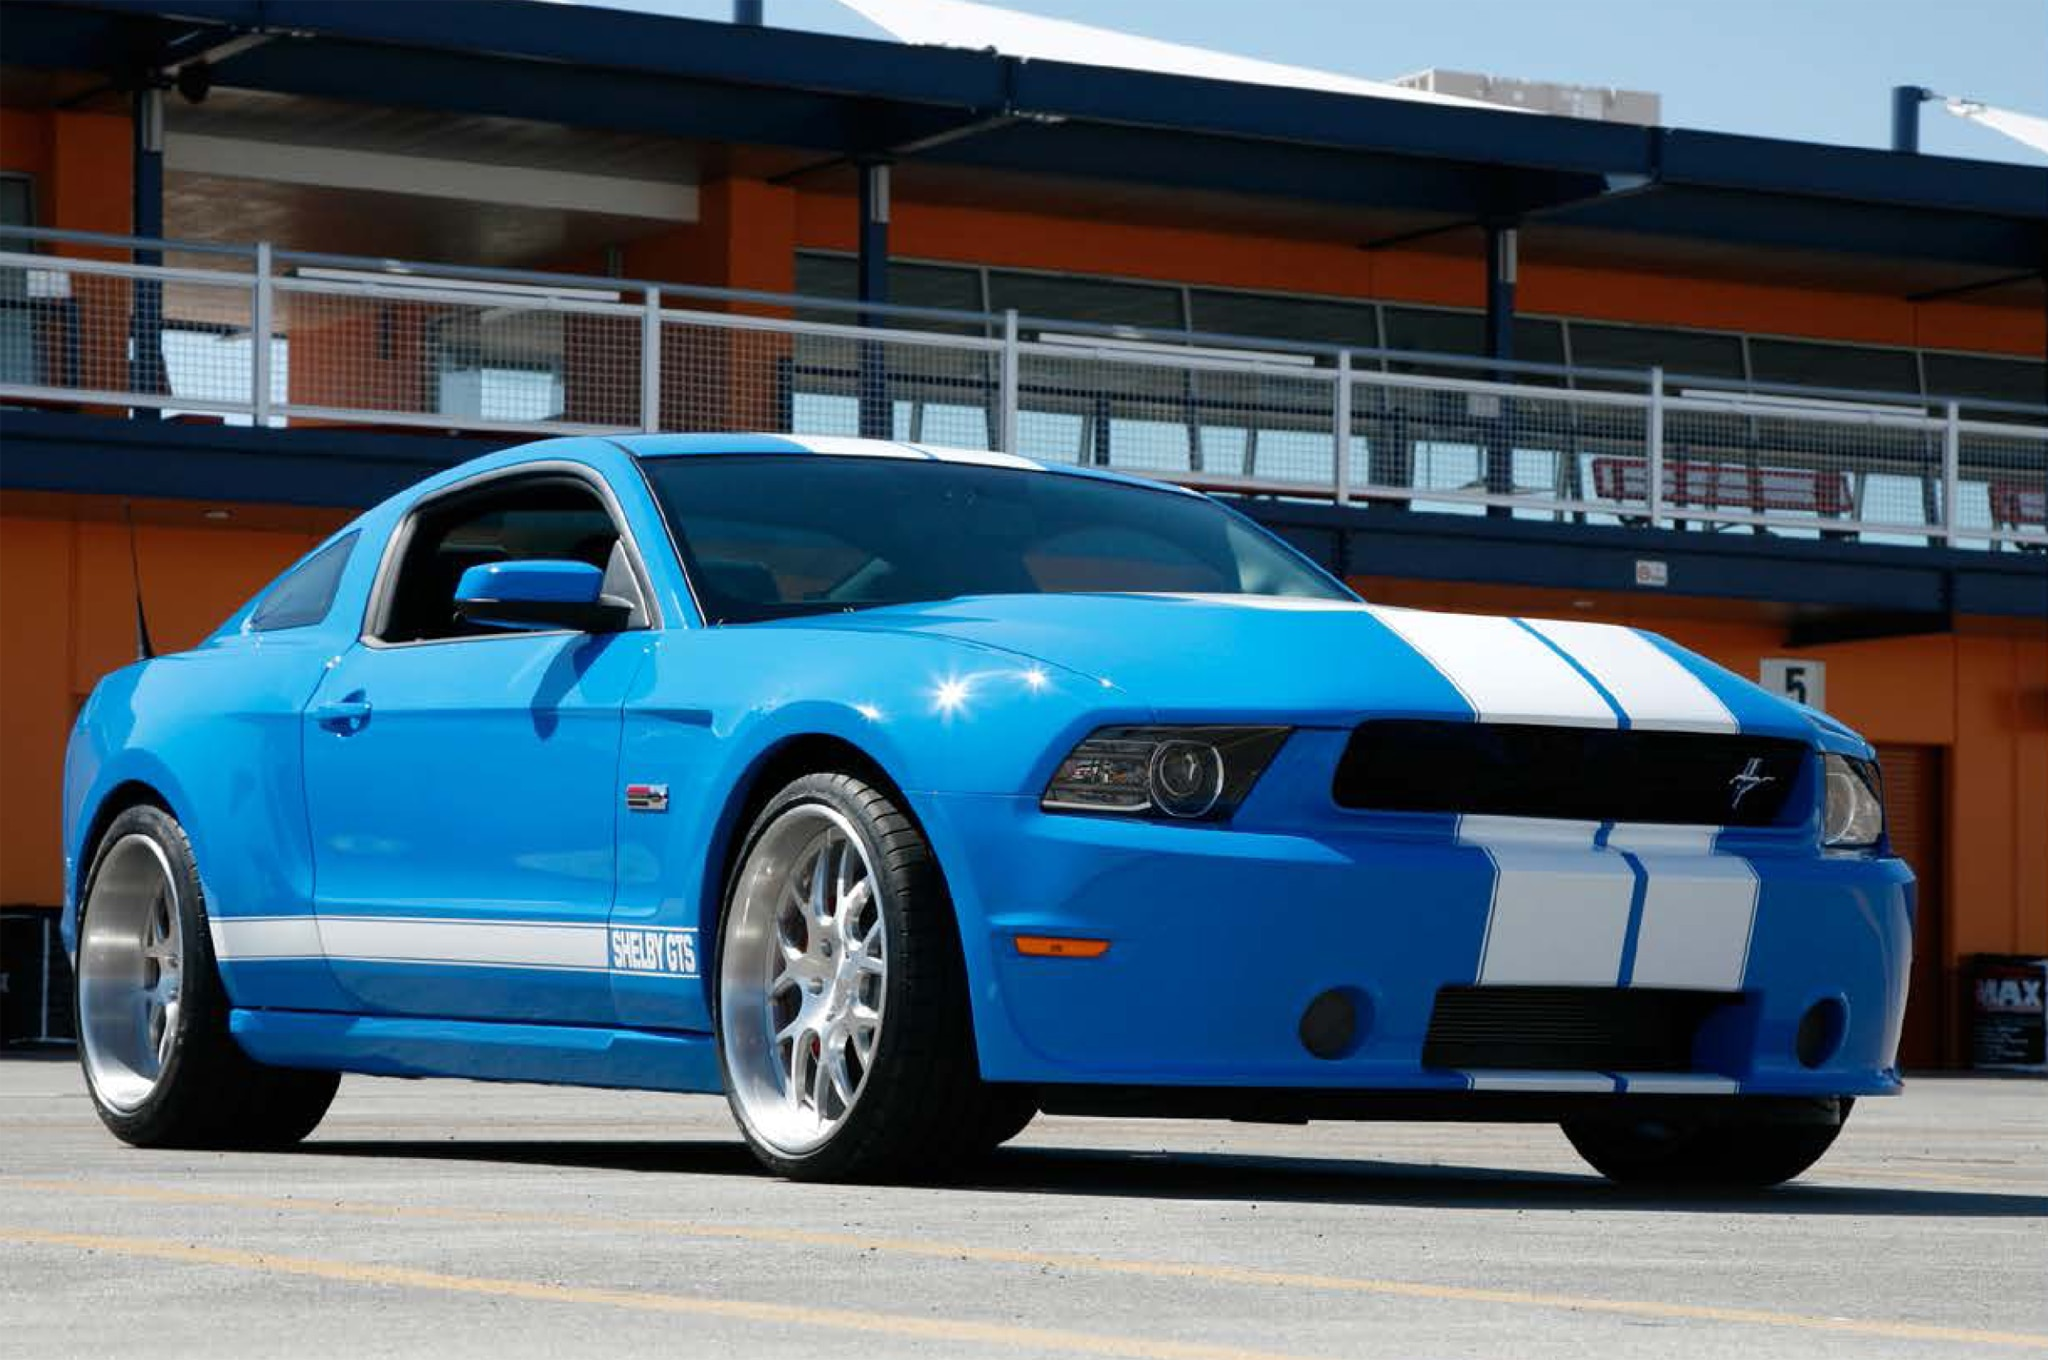 Detroit Auto Auction >> Shelby America is Selling These 14 Prototype and Concept Cars